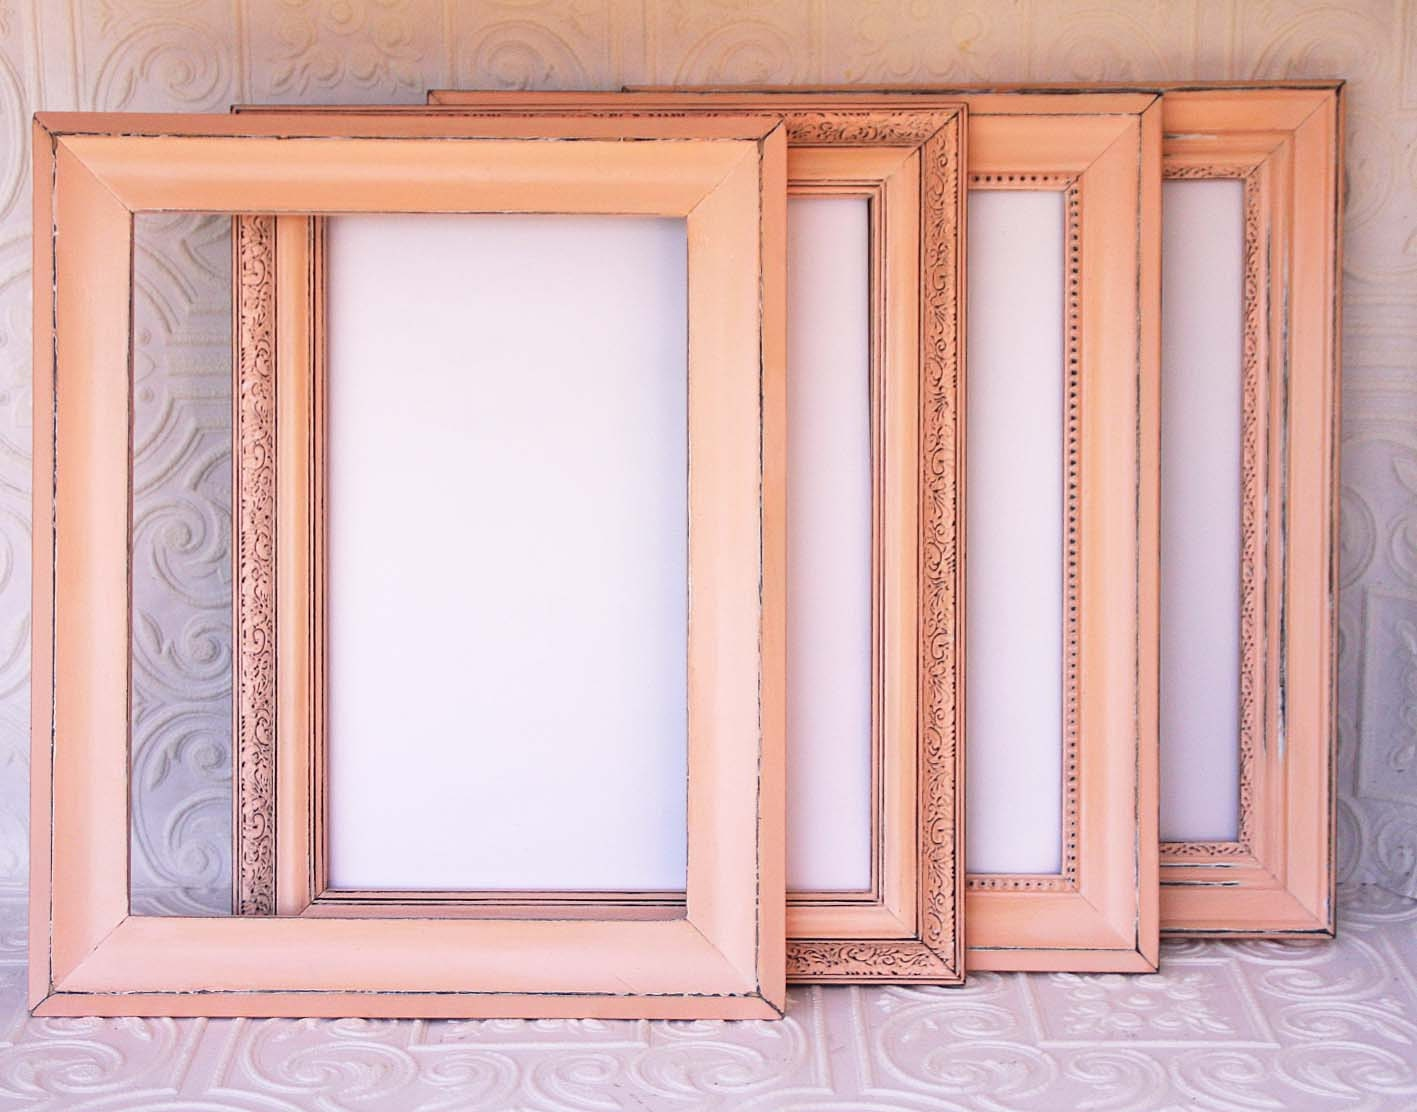 Peach Wedding Frame Your Choice Size & Style Vintage Hand Painted ...